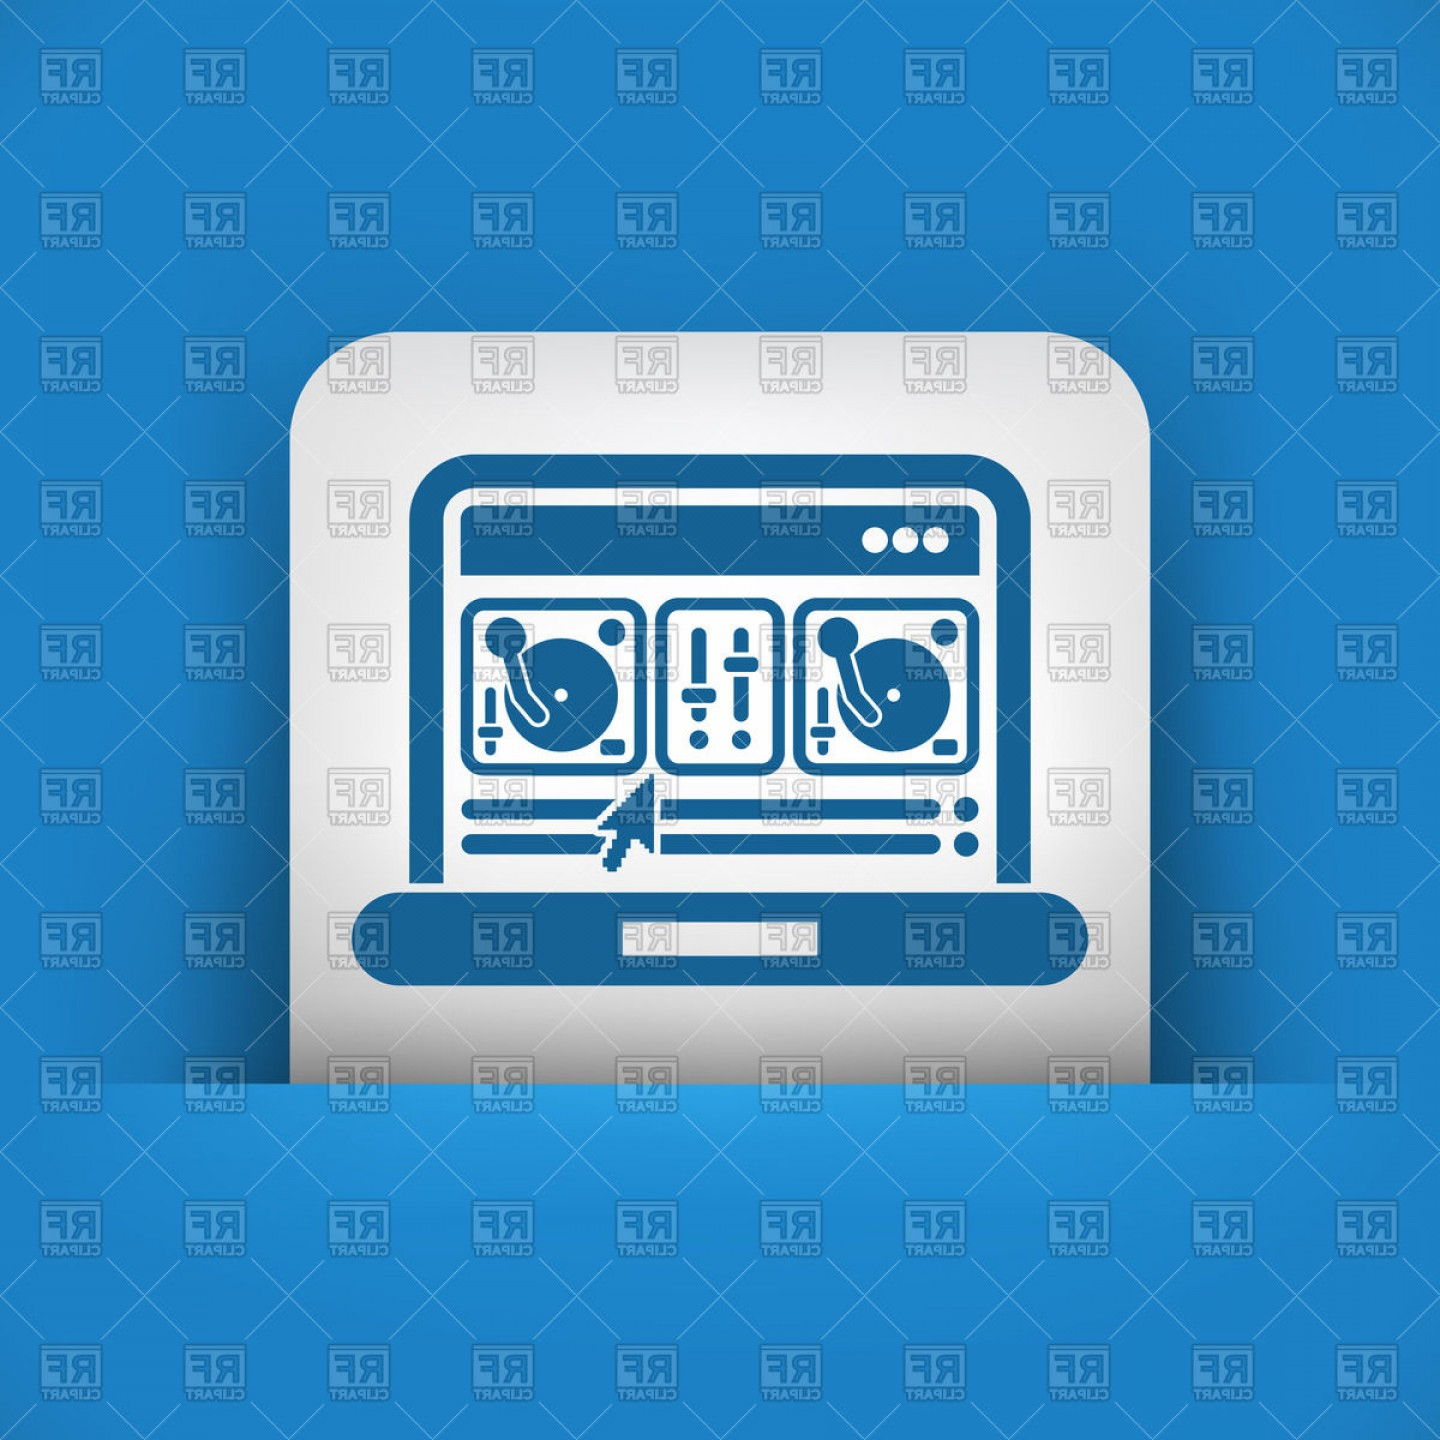 Free Vector File Software: Digital Mixing Console Software Interface Icon Vector Clipart